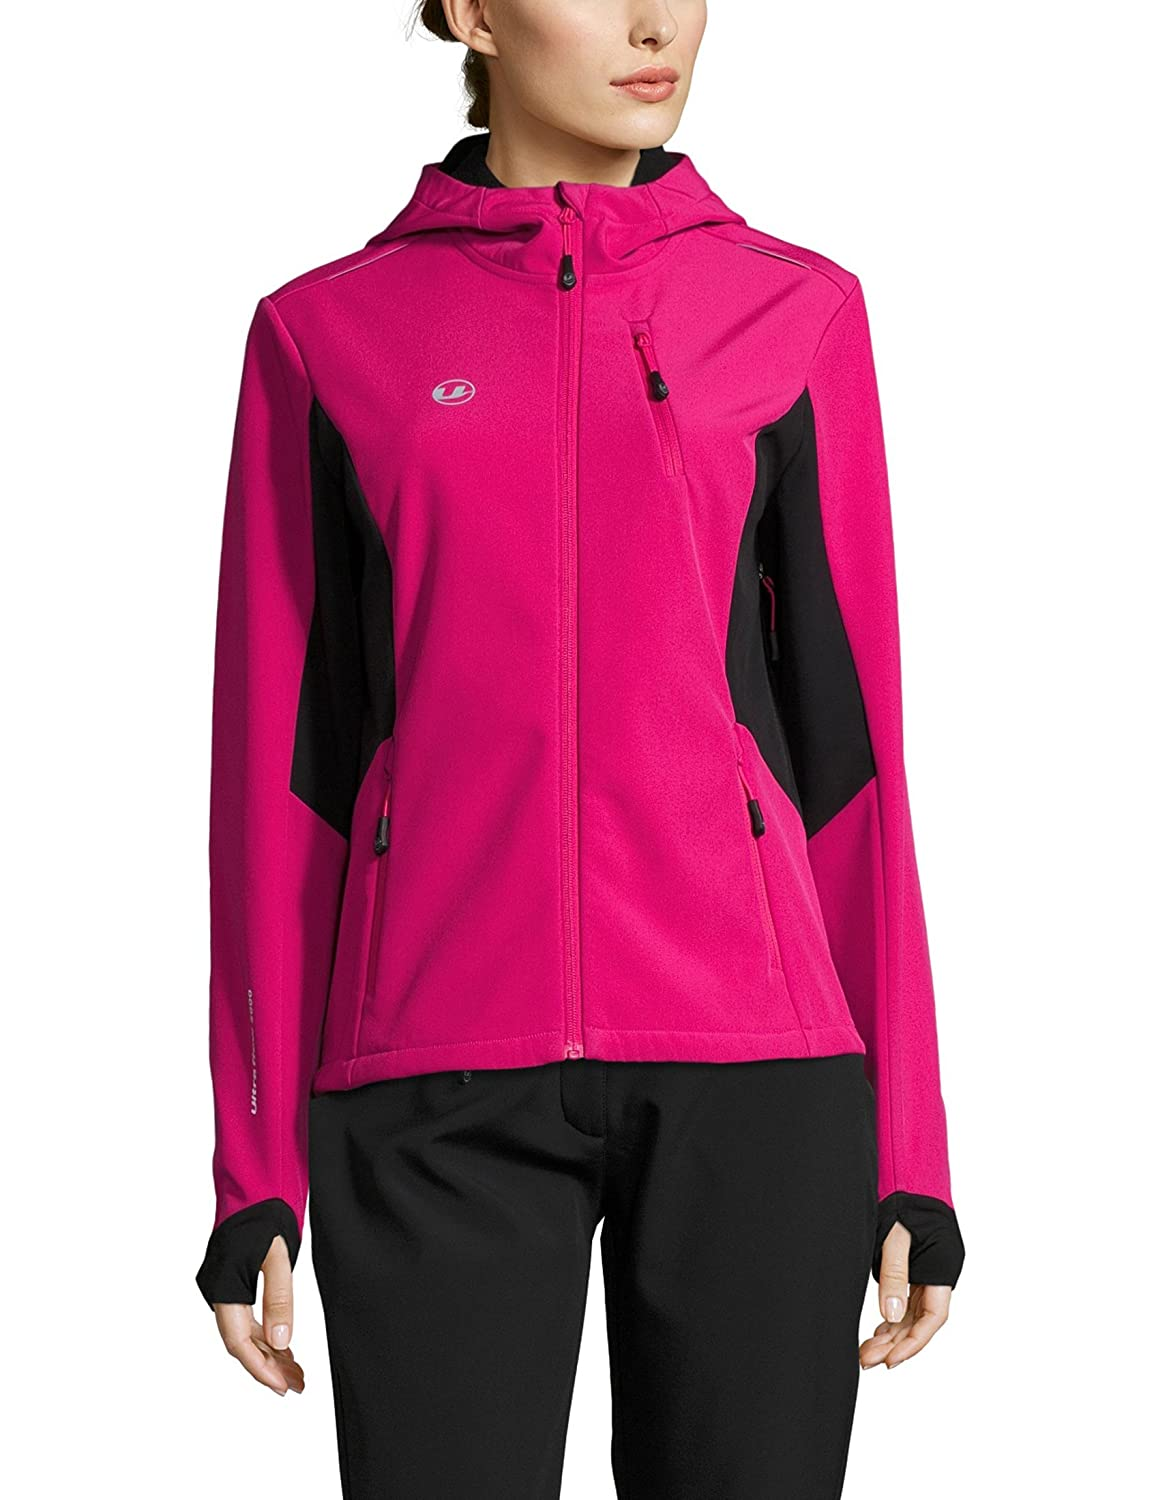 Rose Noir XL Ultrasport Advanced Bibi Veste Softshell Femme